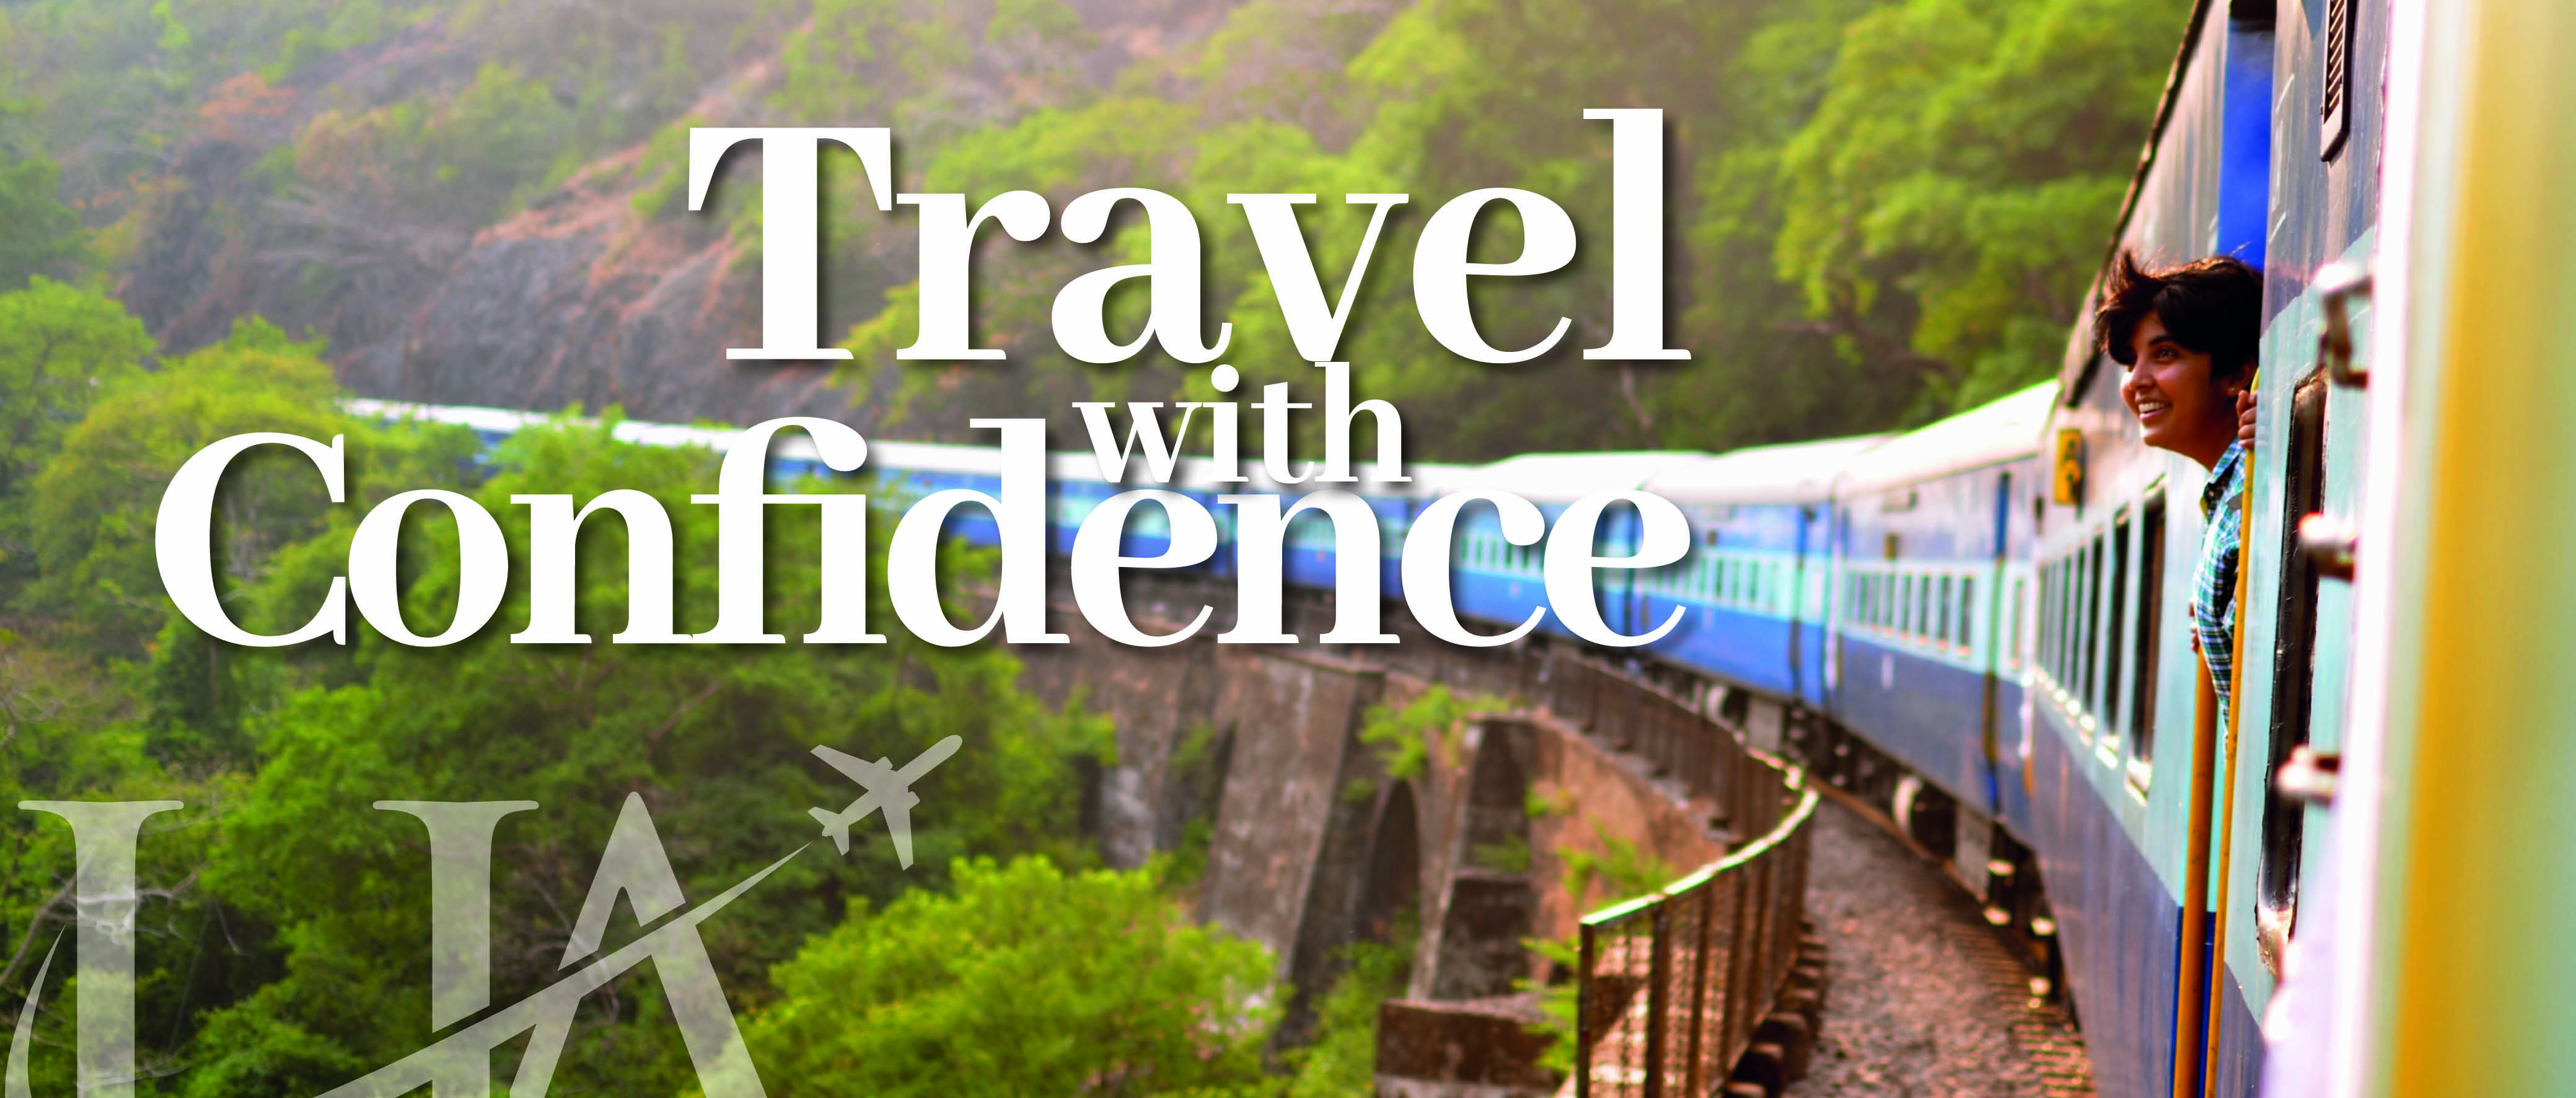 Travel with Confidence Holiday Architects